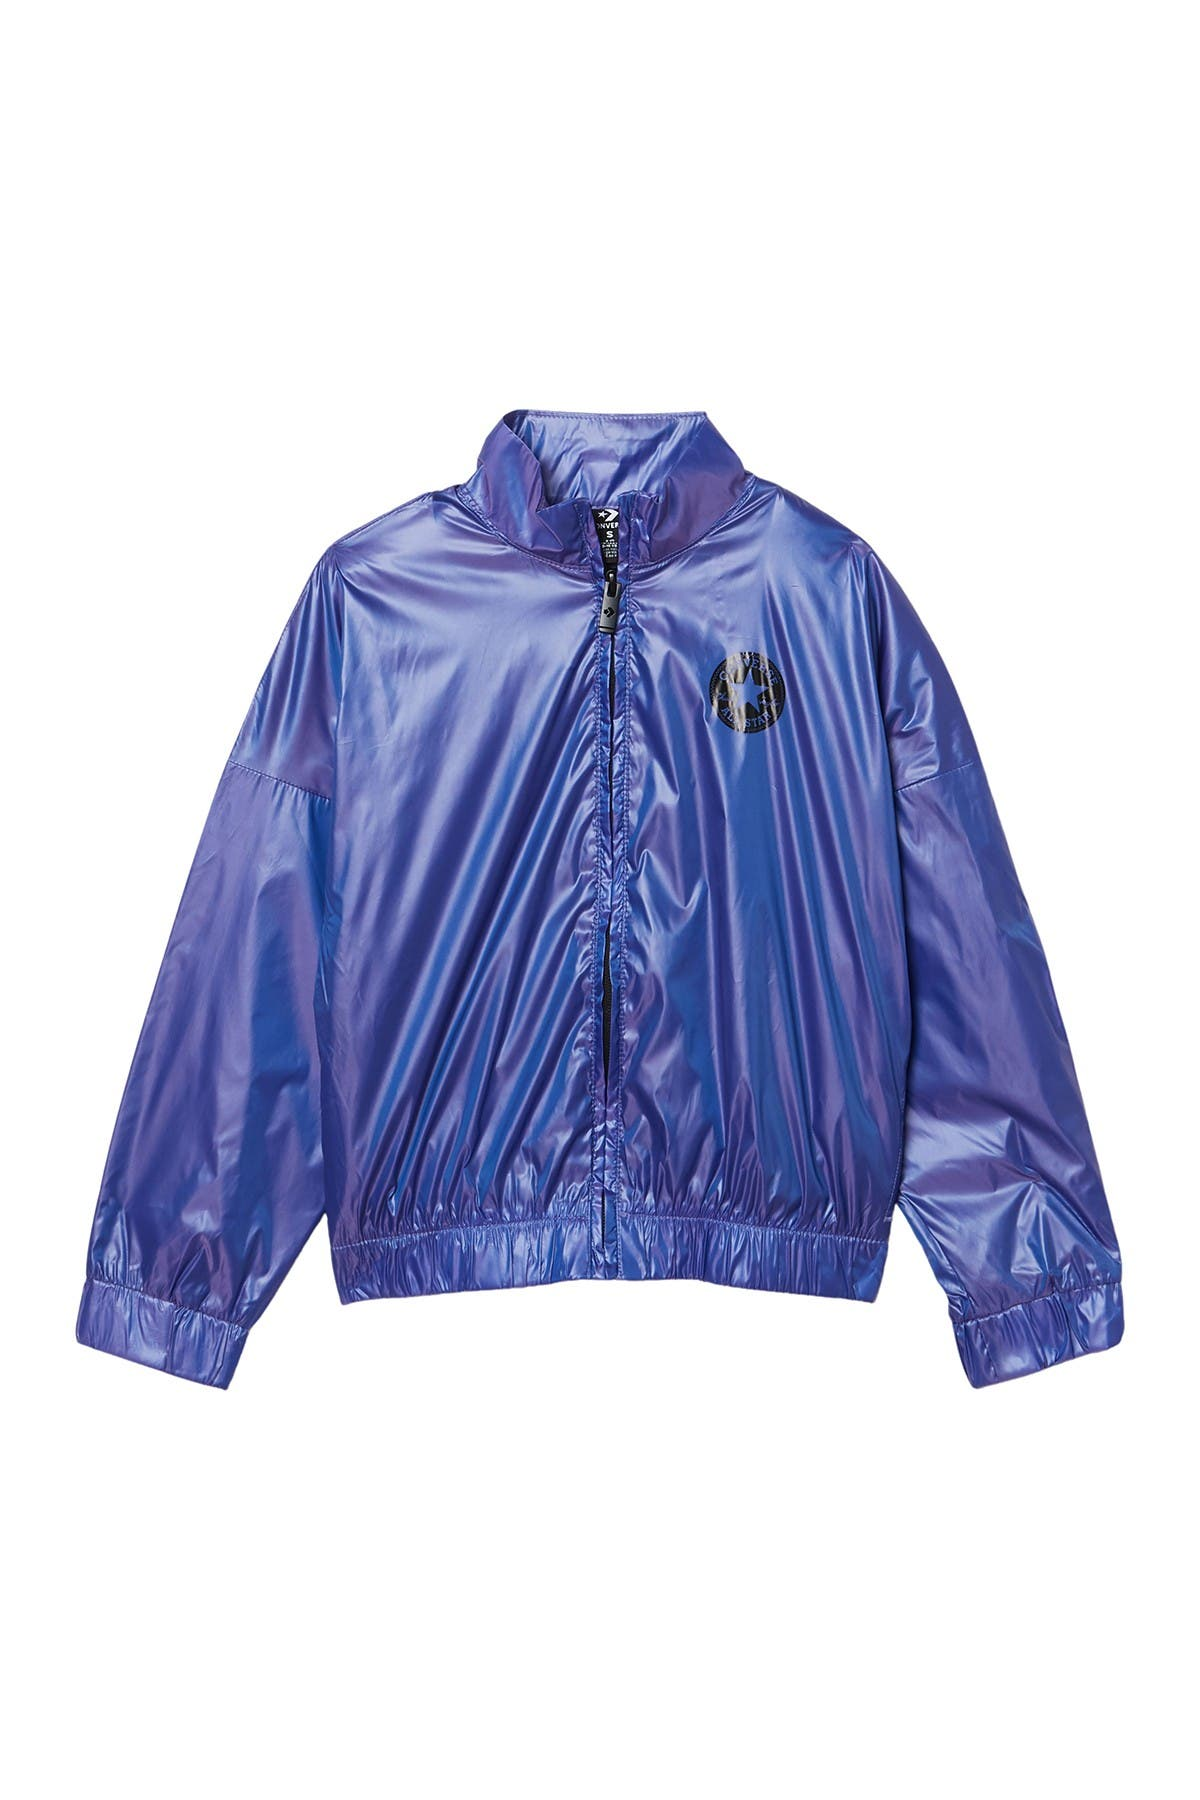 Image of Hurley Two-Tone Taffeta Bomber Jacket